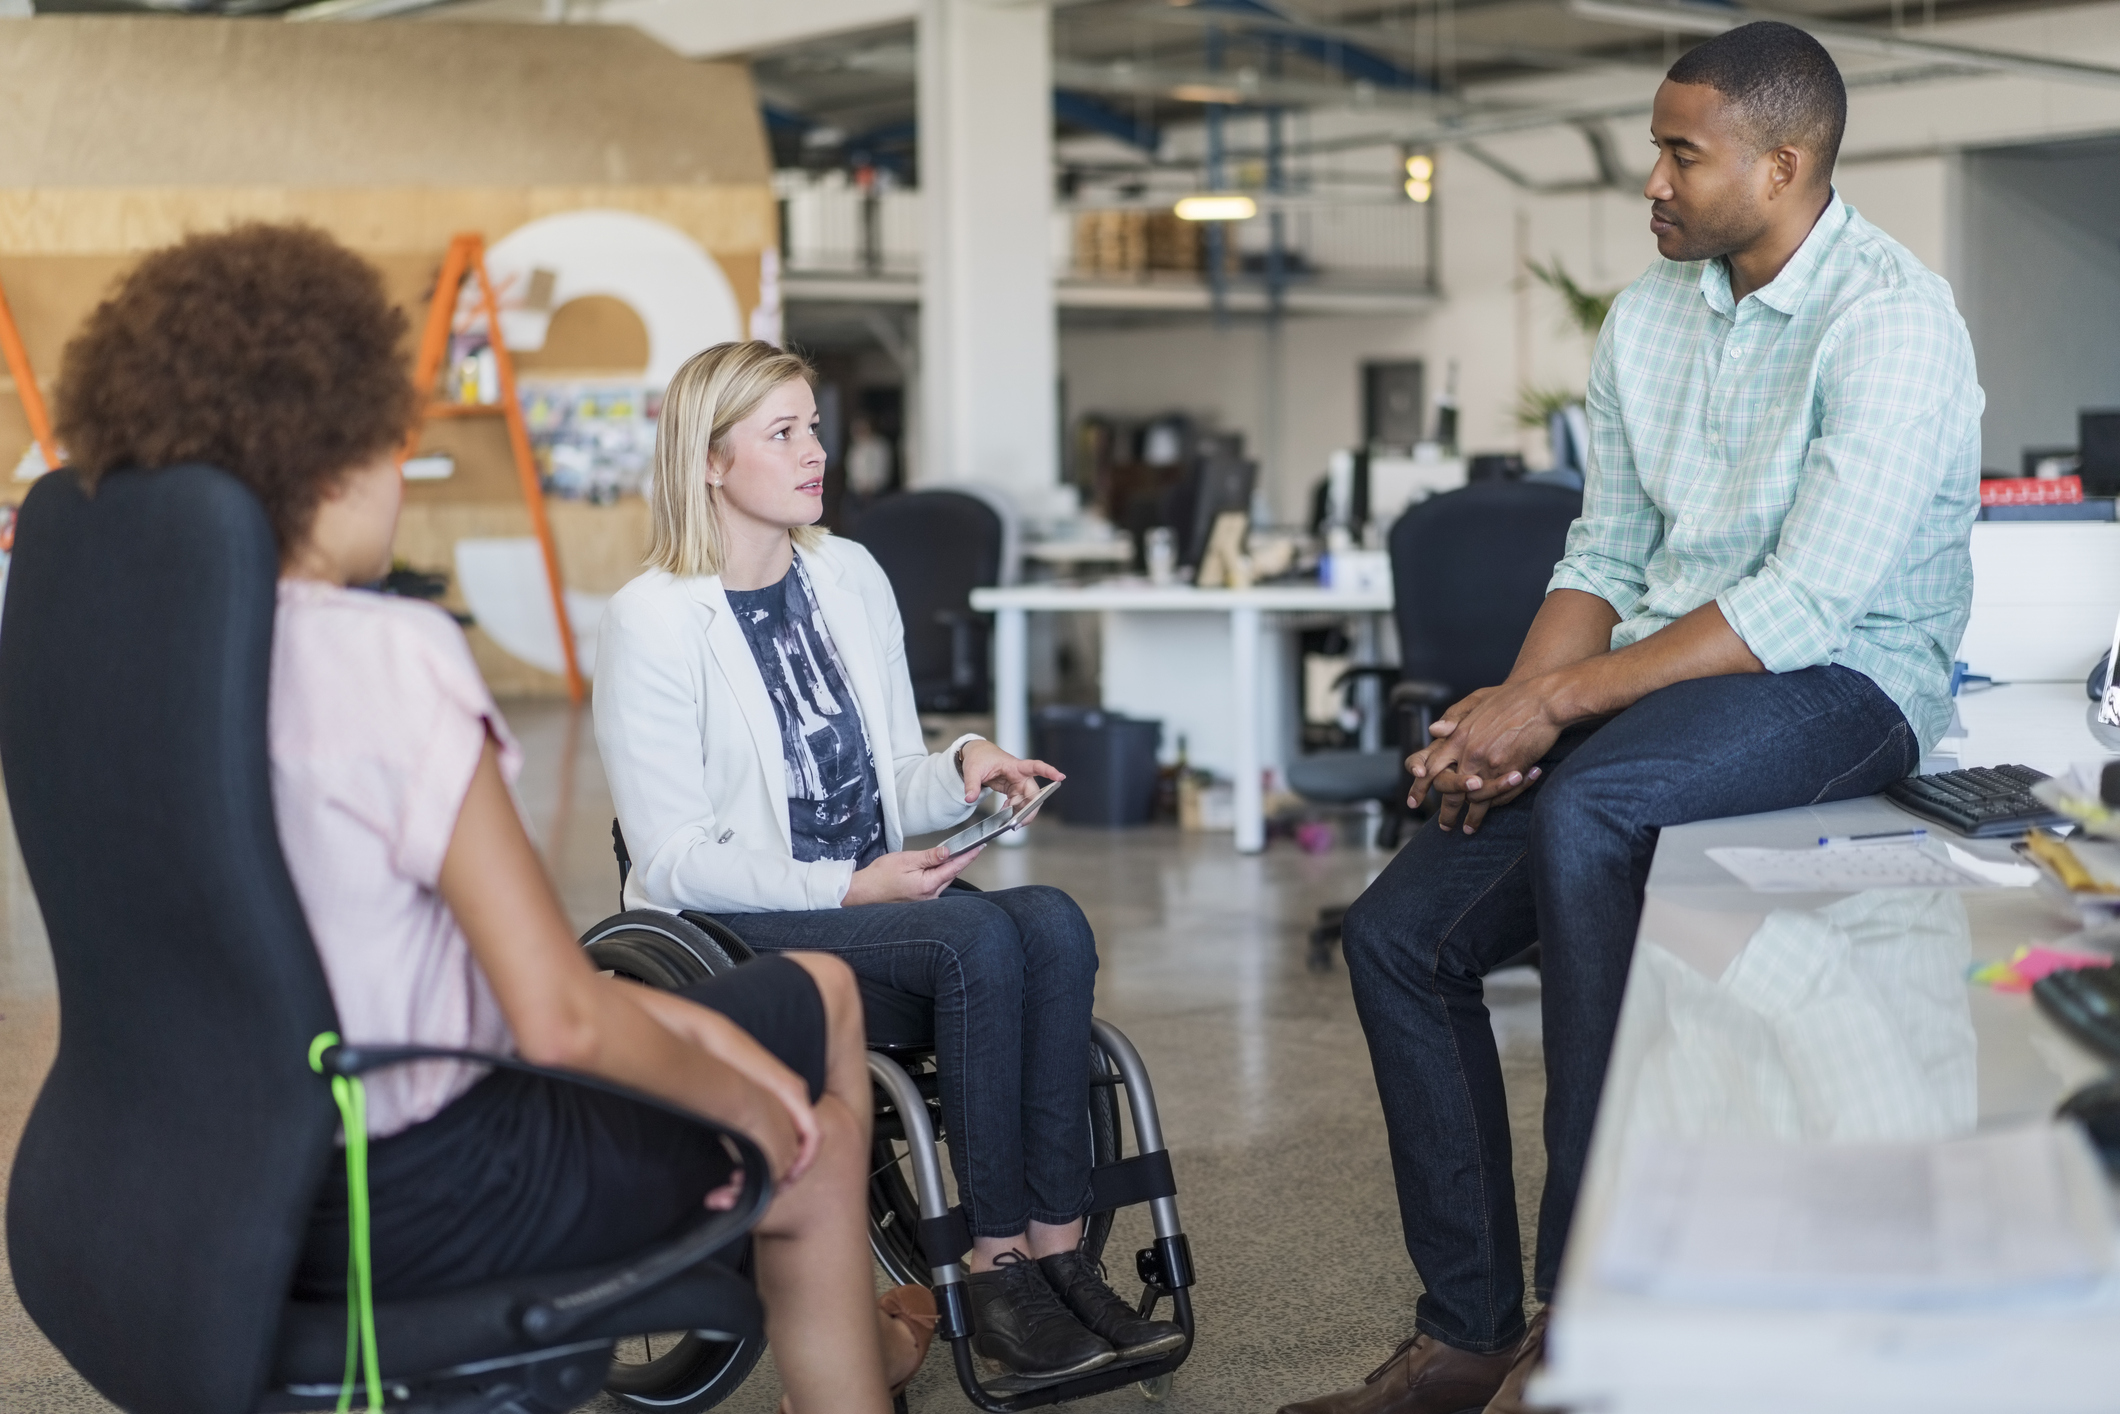 Disability Insurance: An Important Part of Social Security